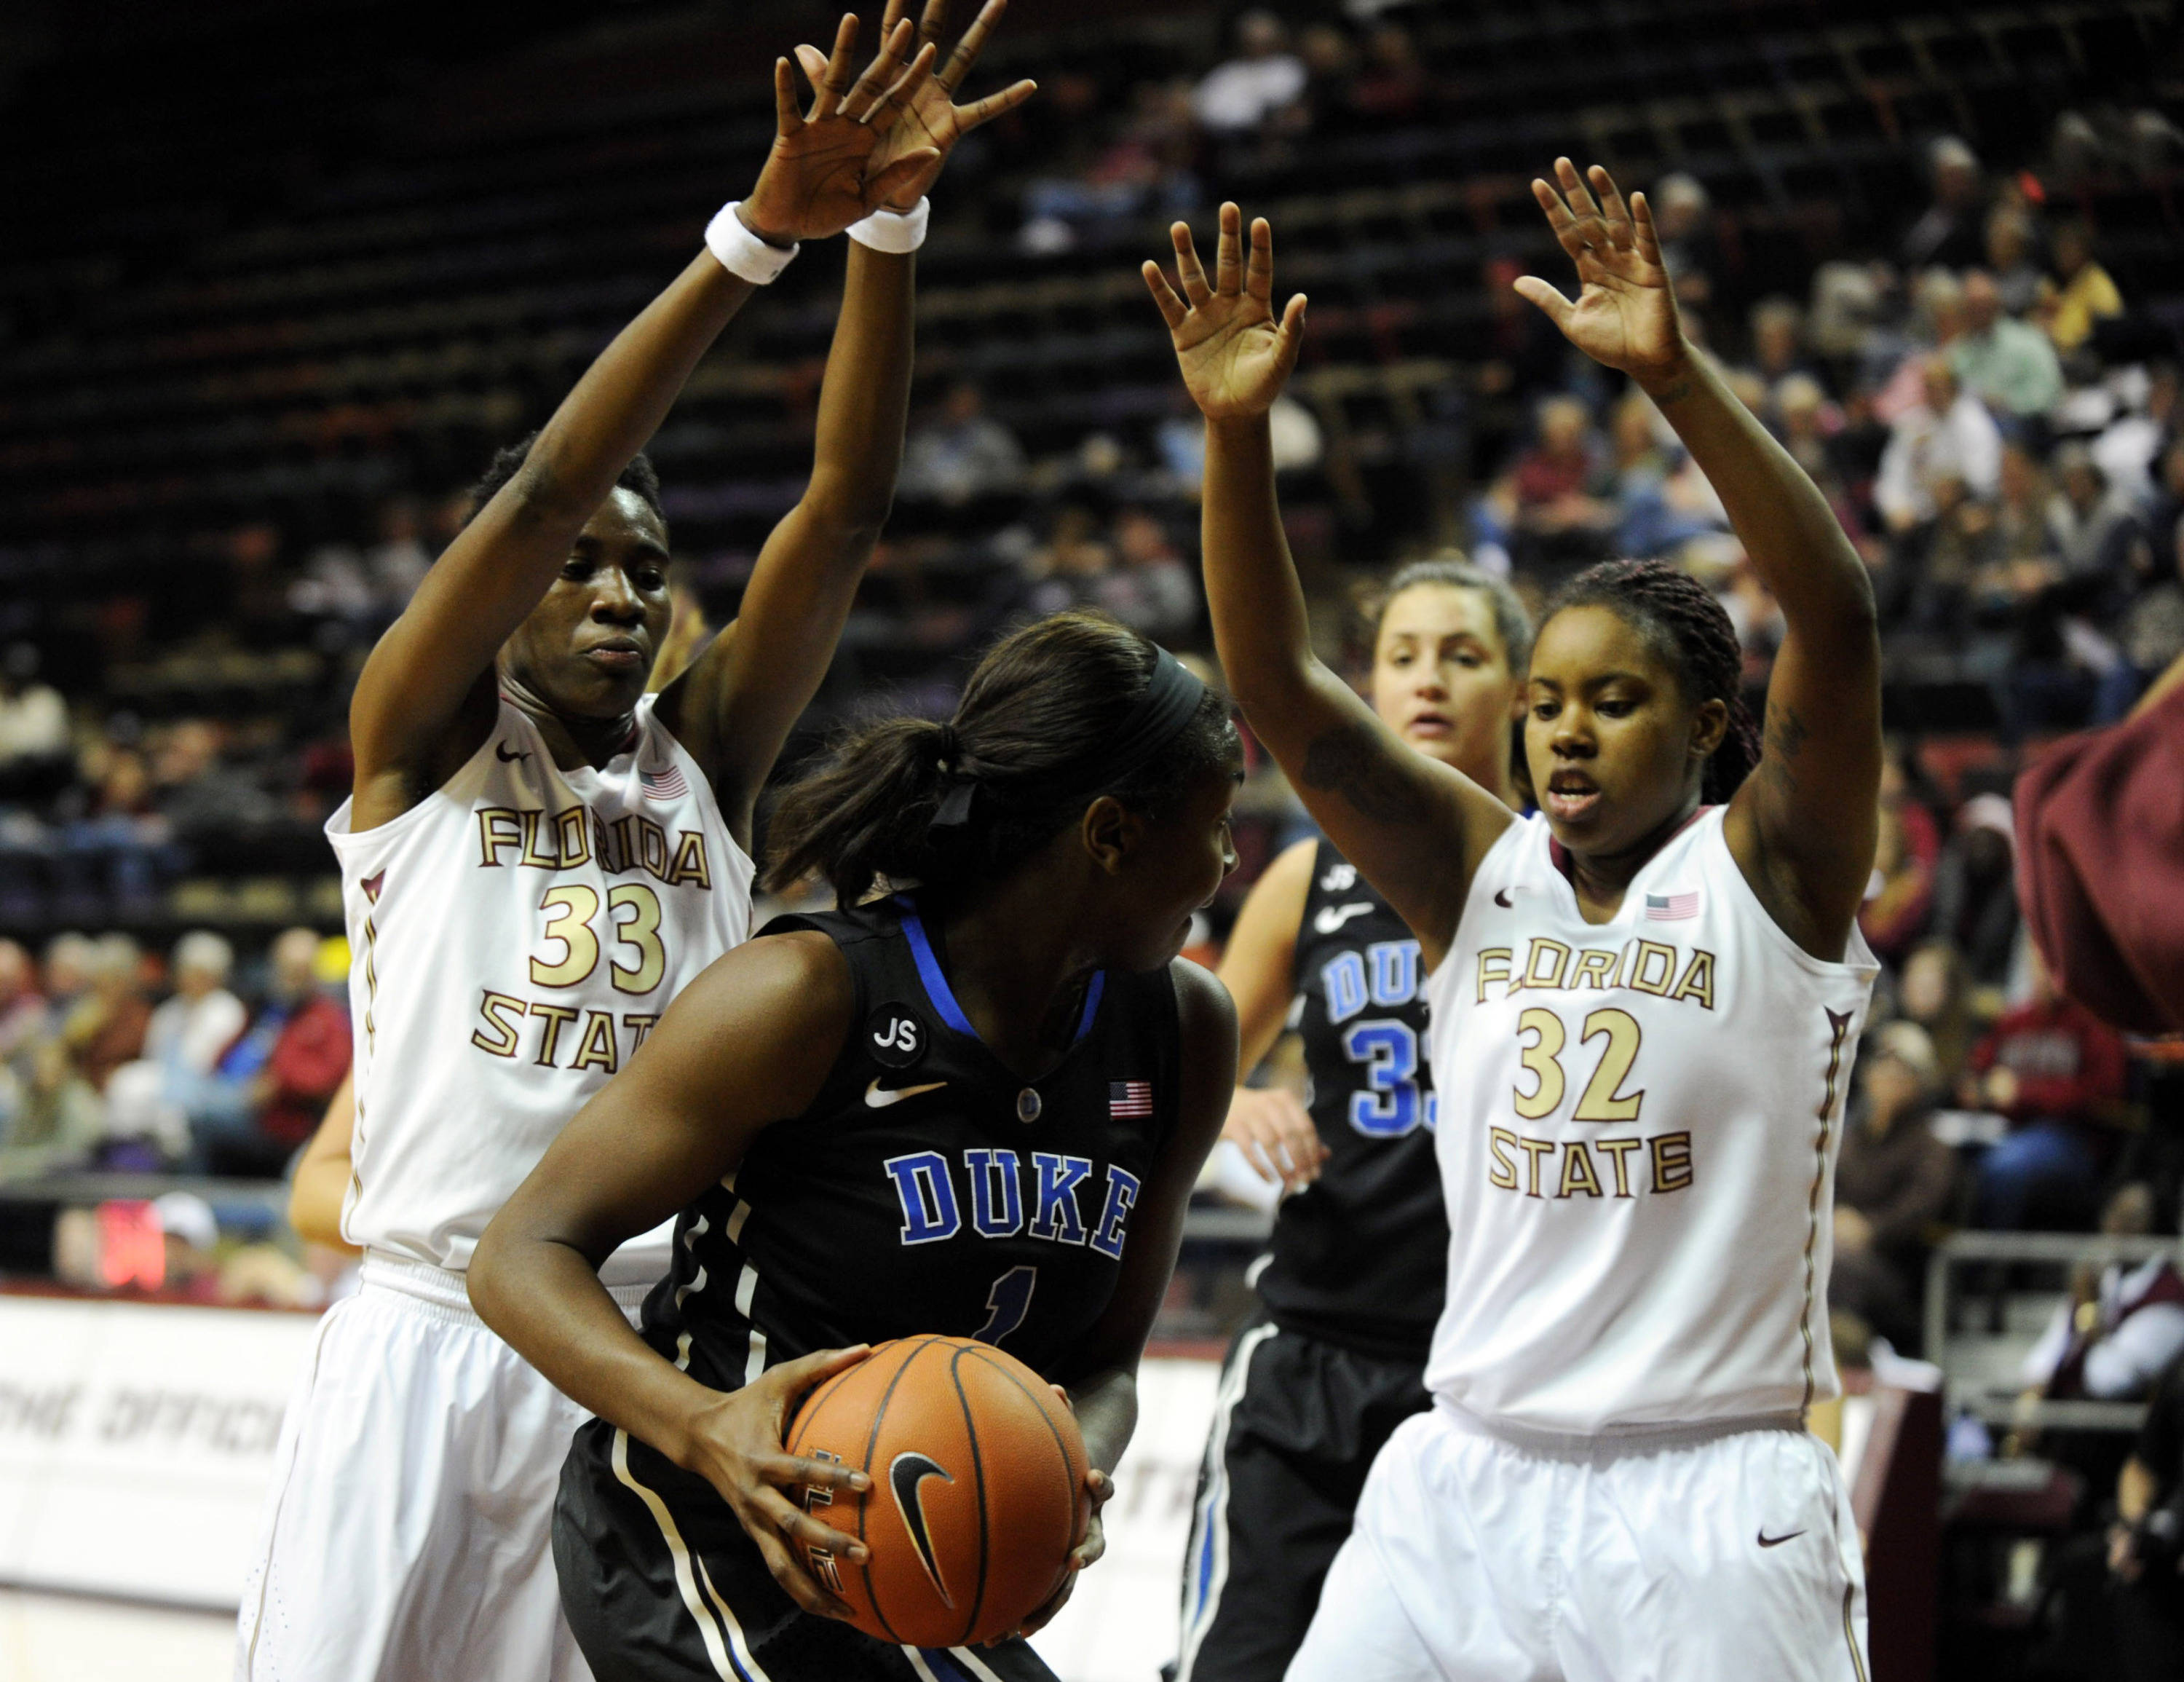 Jan 23, 2014; Tallahassee, FL, USA; Duke Blue Devils center Elizabeth Williams (1) tries to shoot past Florida State Seminoles forward Lauren Coleman (32) and forward Natasha Howard (33) during the first half of the game at the Donald L. Tucker Center (Tallahassee). Mandatory Credit: Melina Vastola-USA TODAY Sports